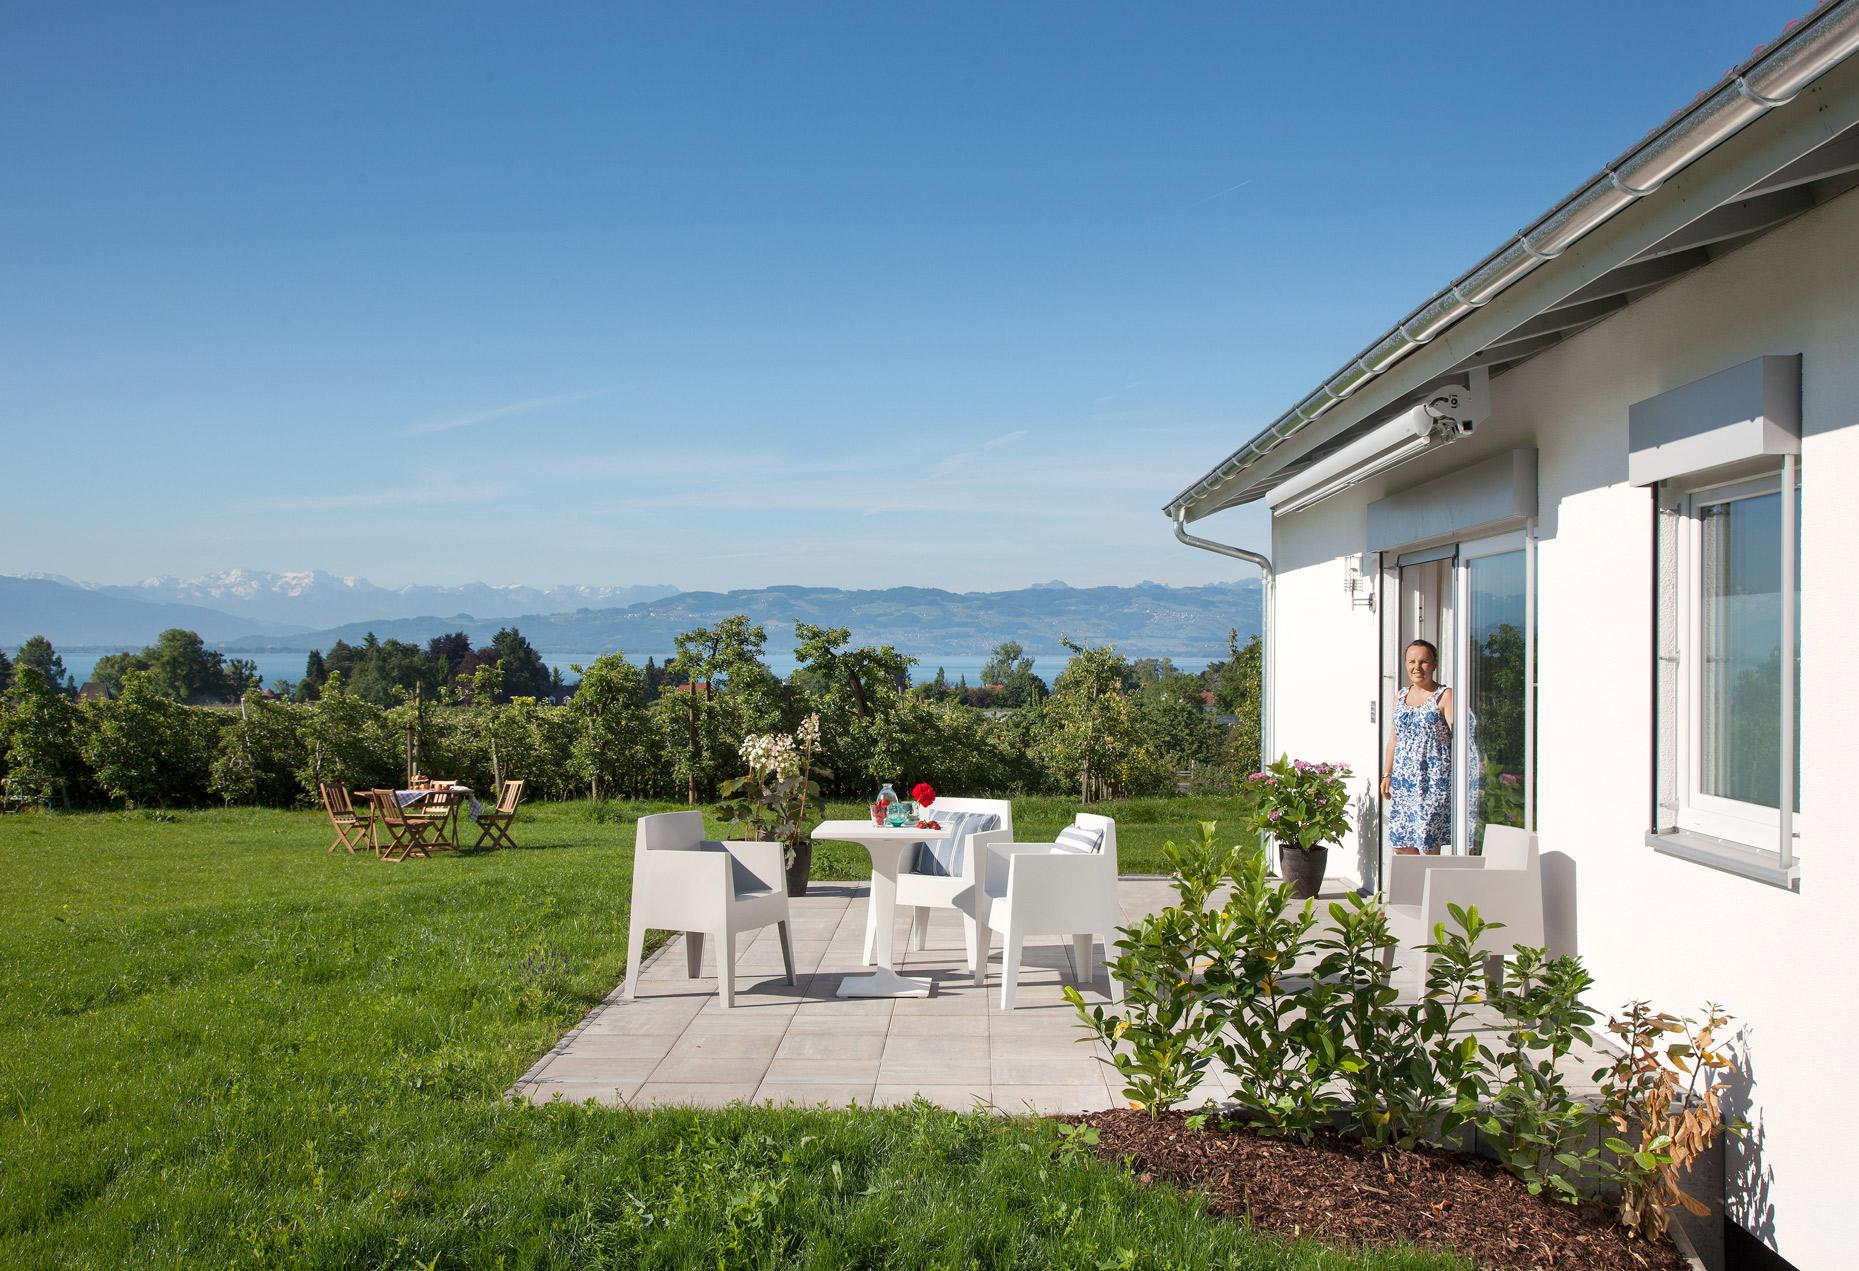 FlyingSpace holiday resort on Lake Constance